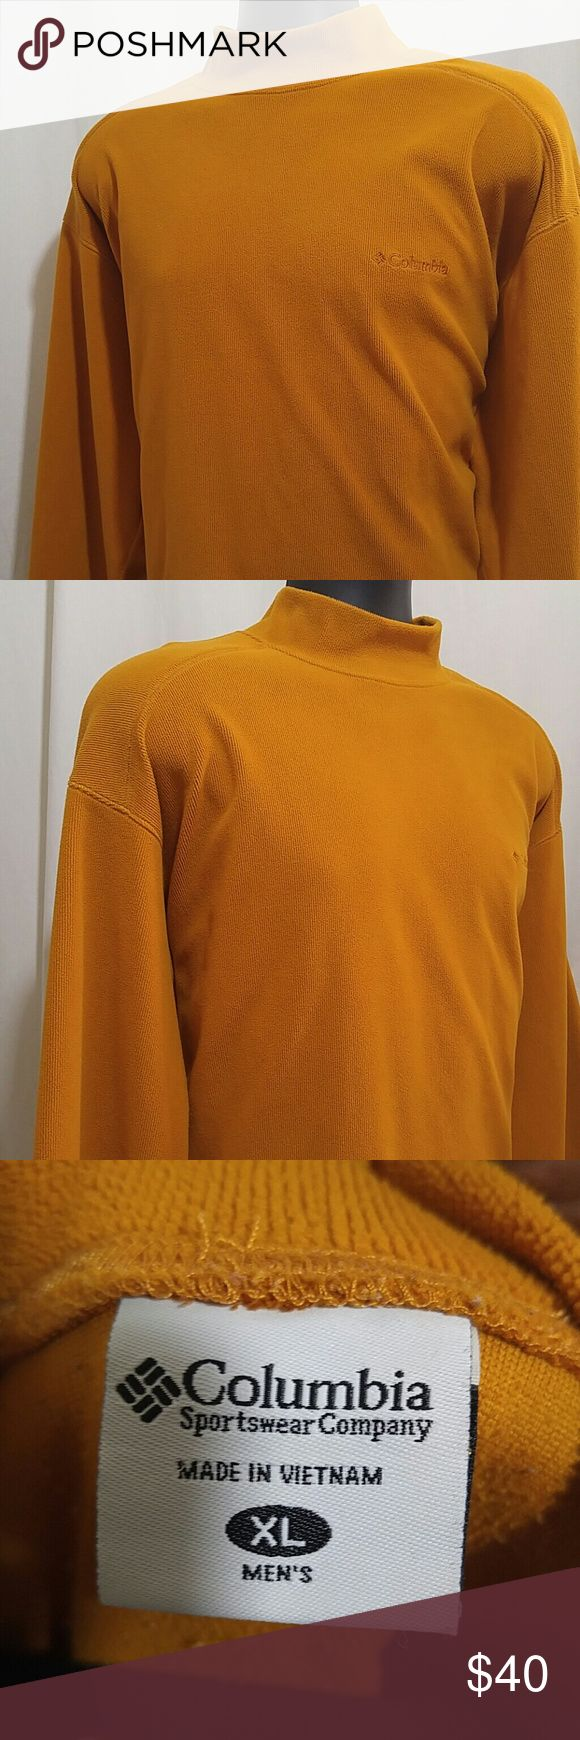 COLUMBIA MOCK Neck Sweater Size XL Stunning COLUMBIA Men's Mock Neck Sweater.  This sweater is light orange, and is a size XL.  This Men's COLUMBIA Sweater is in excellent condition. Columbia Sweaters